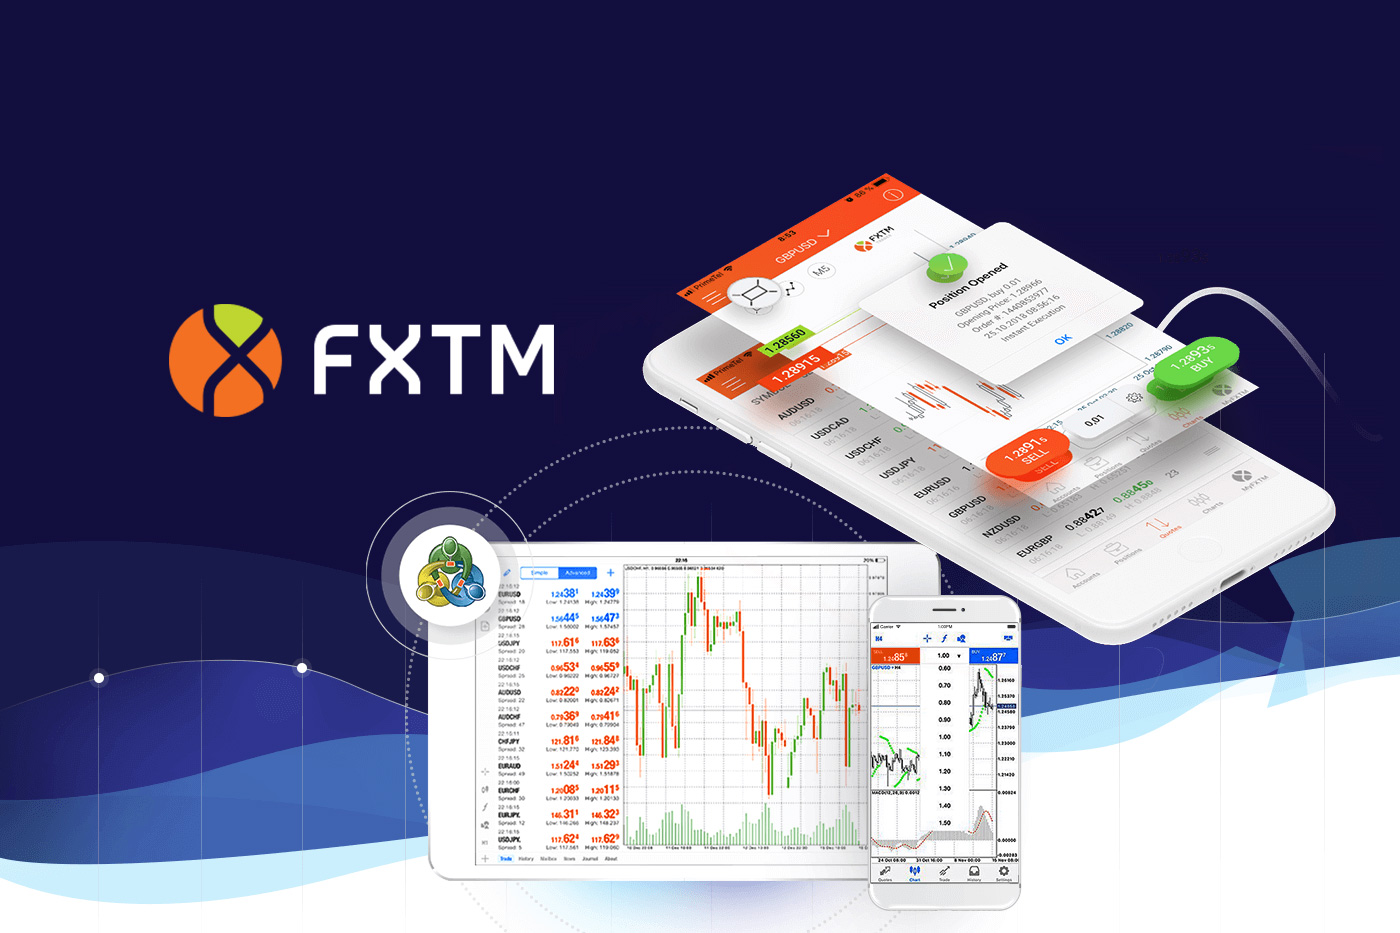 FXTM (ForexTime) Broker Review - Fee vs Features